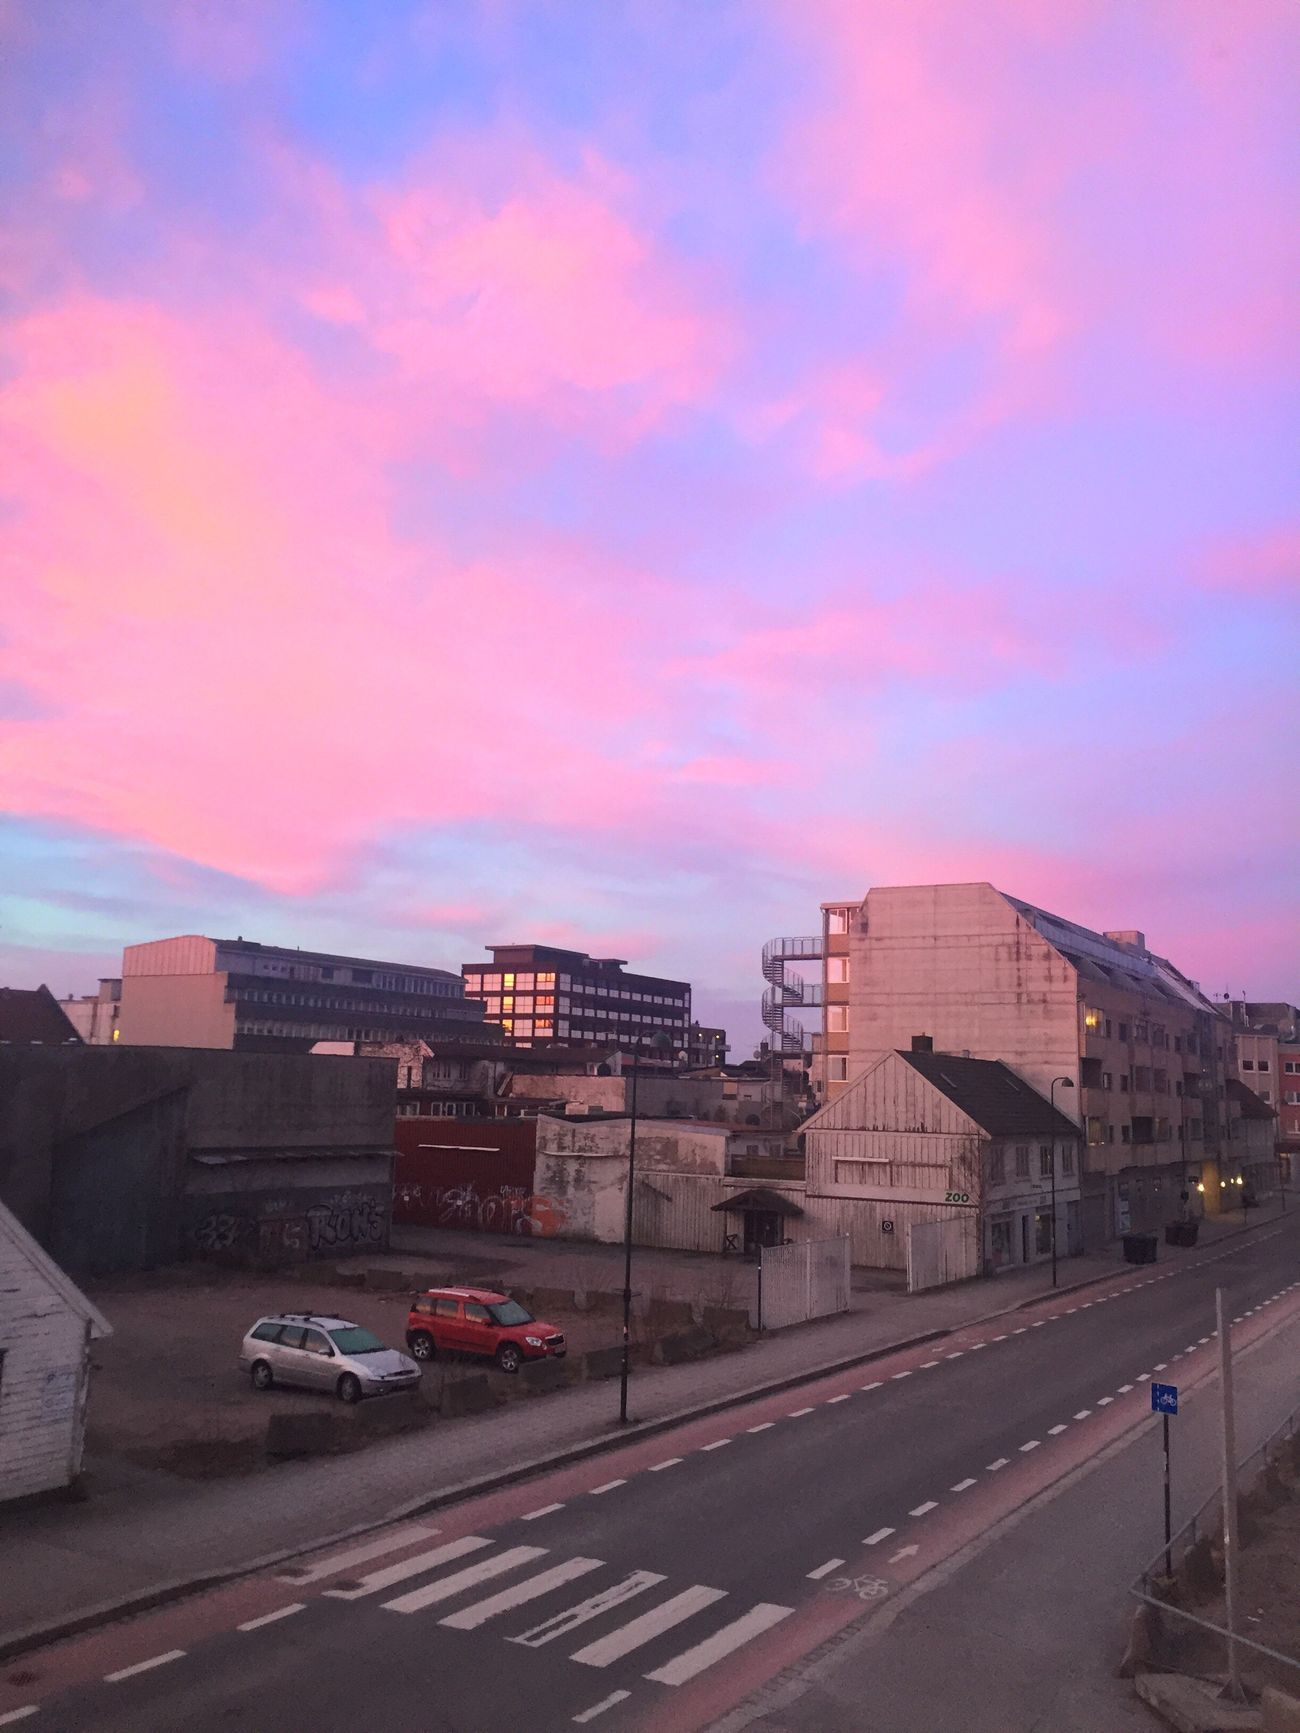 View from window View City Town Morning Landscape Photography Love Sky Pink Clouds